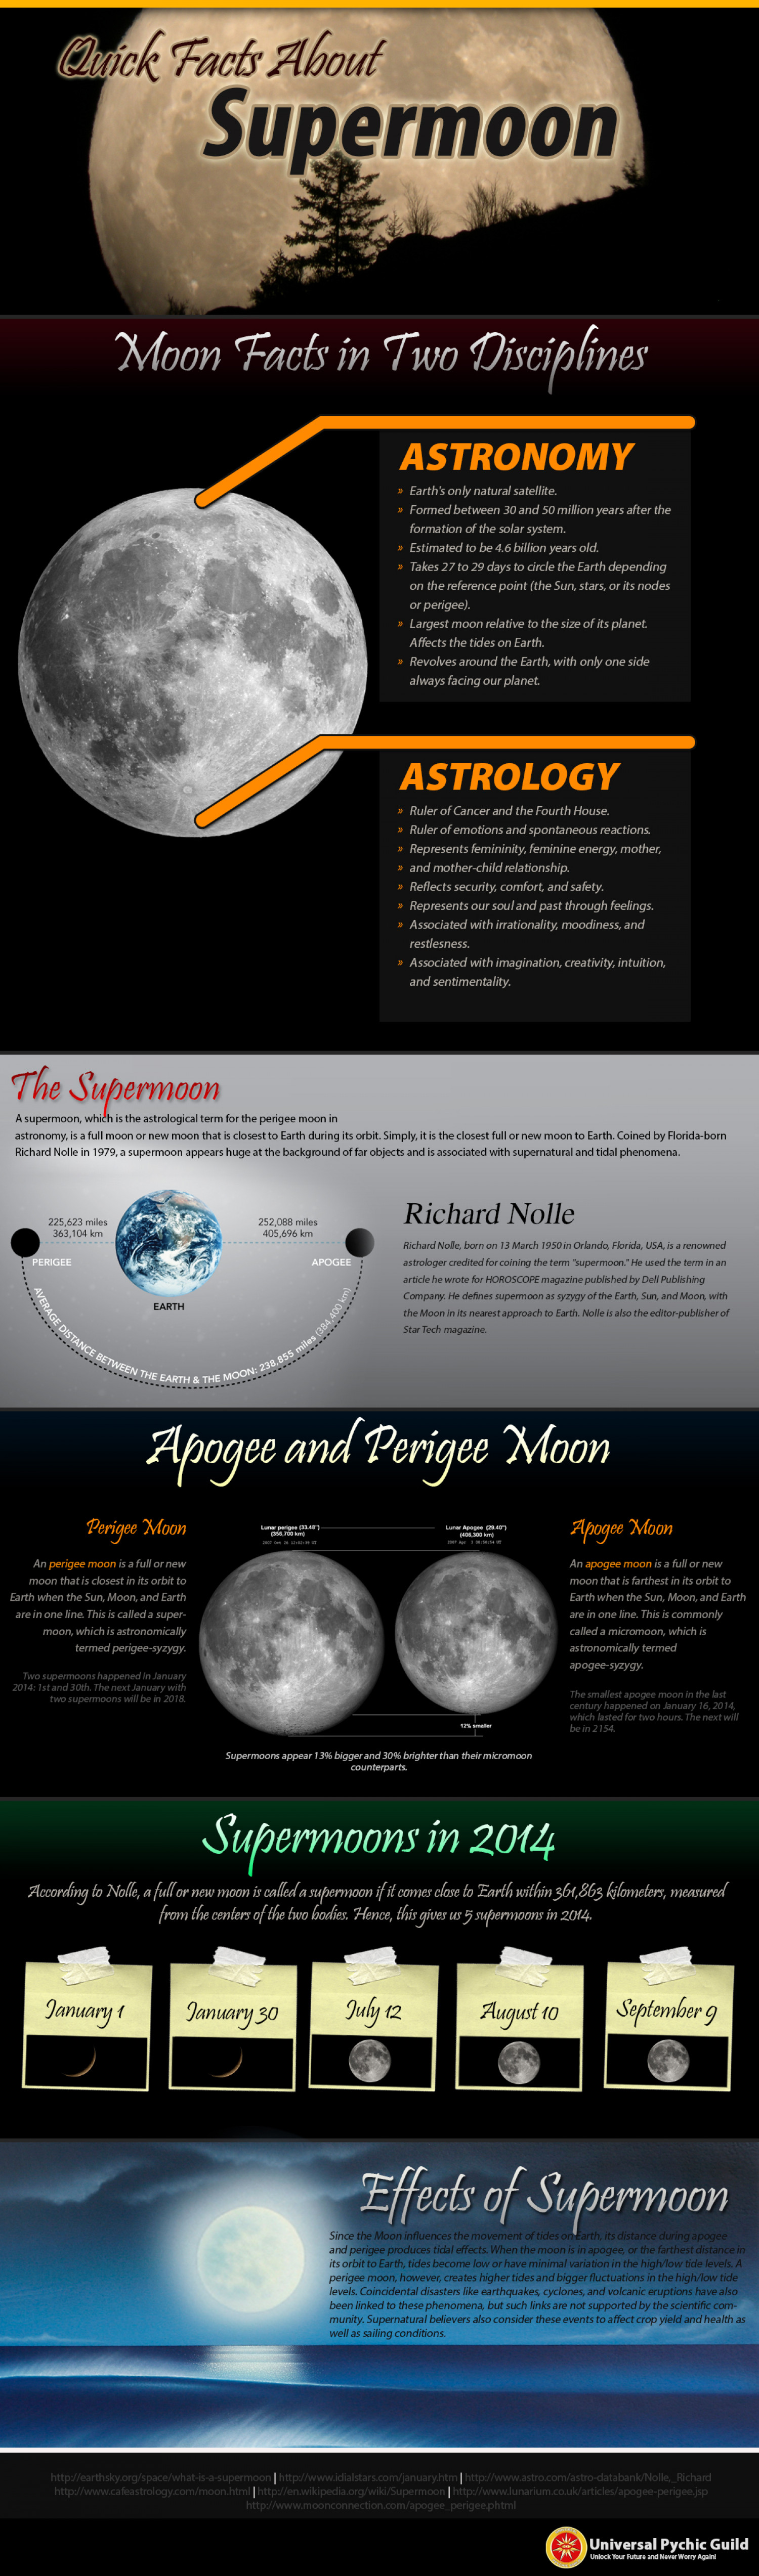 Quick Facts About the Supermoon Infographic